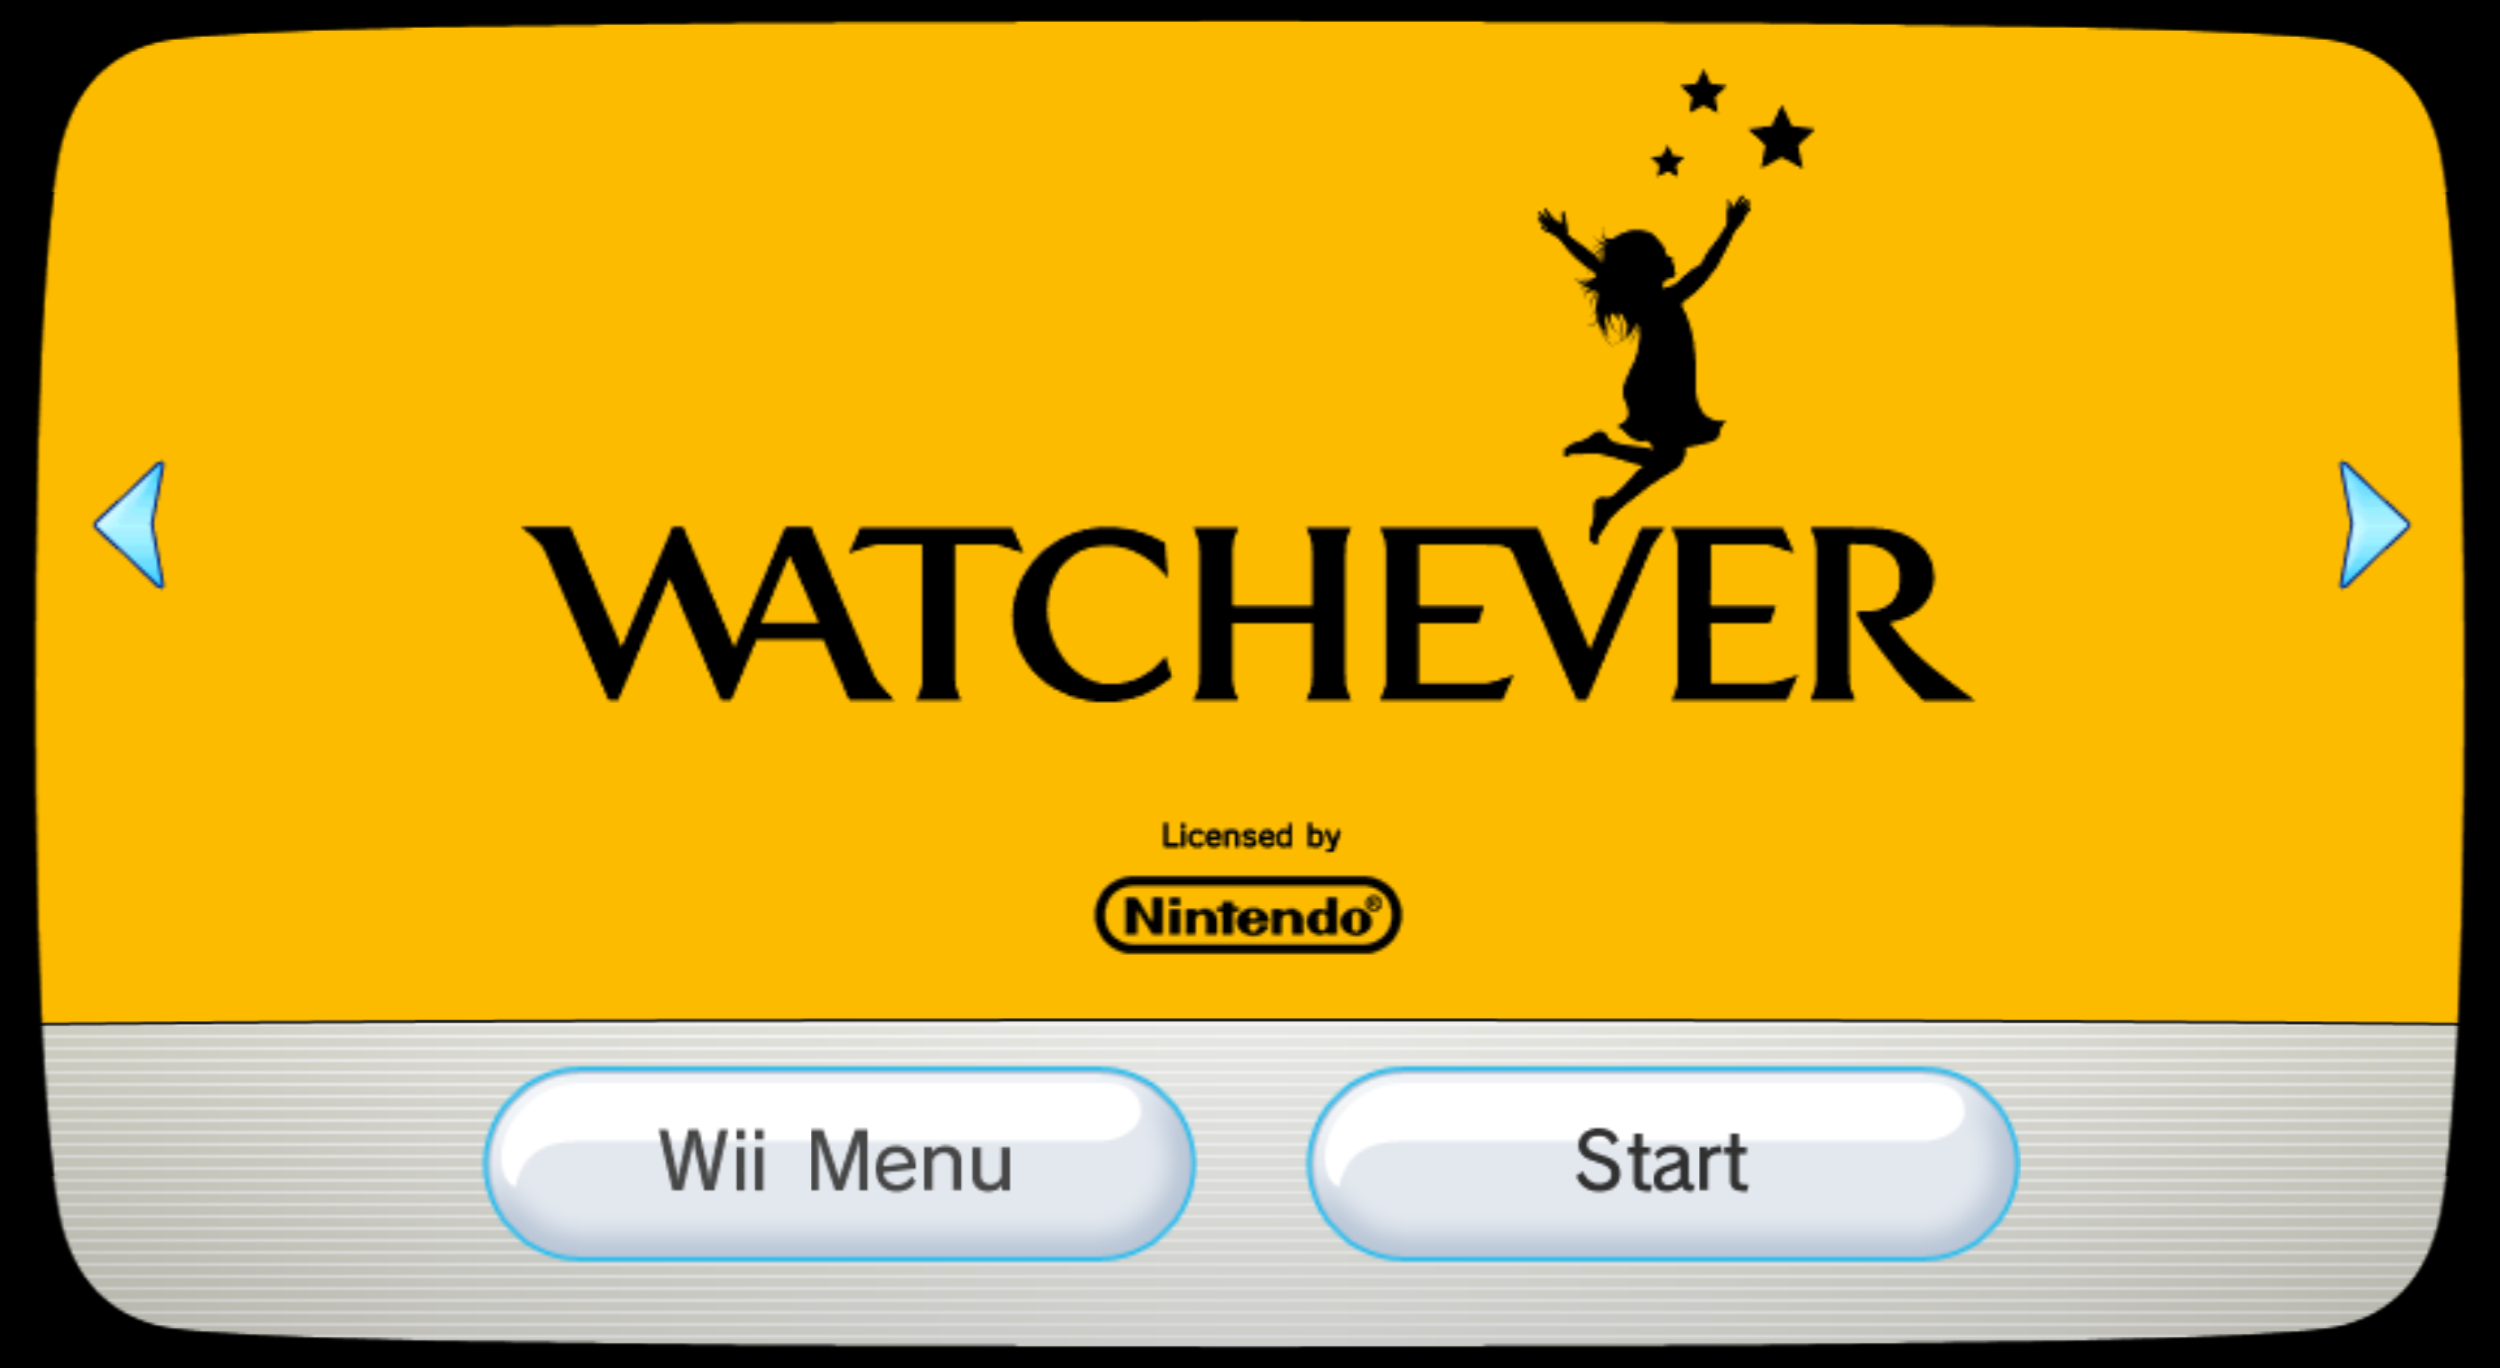 File:Watchever.png